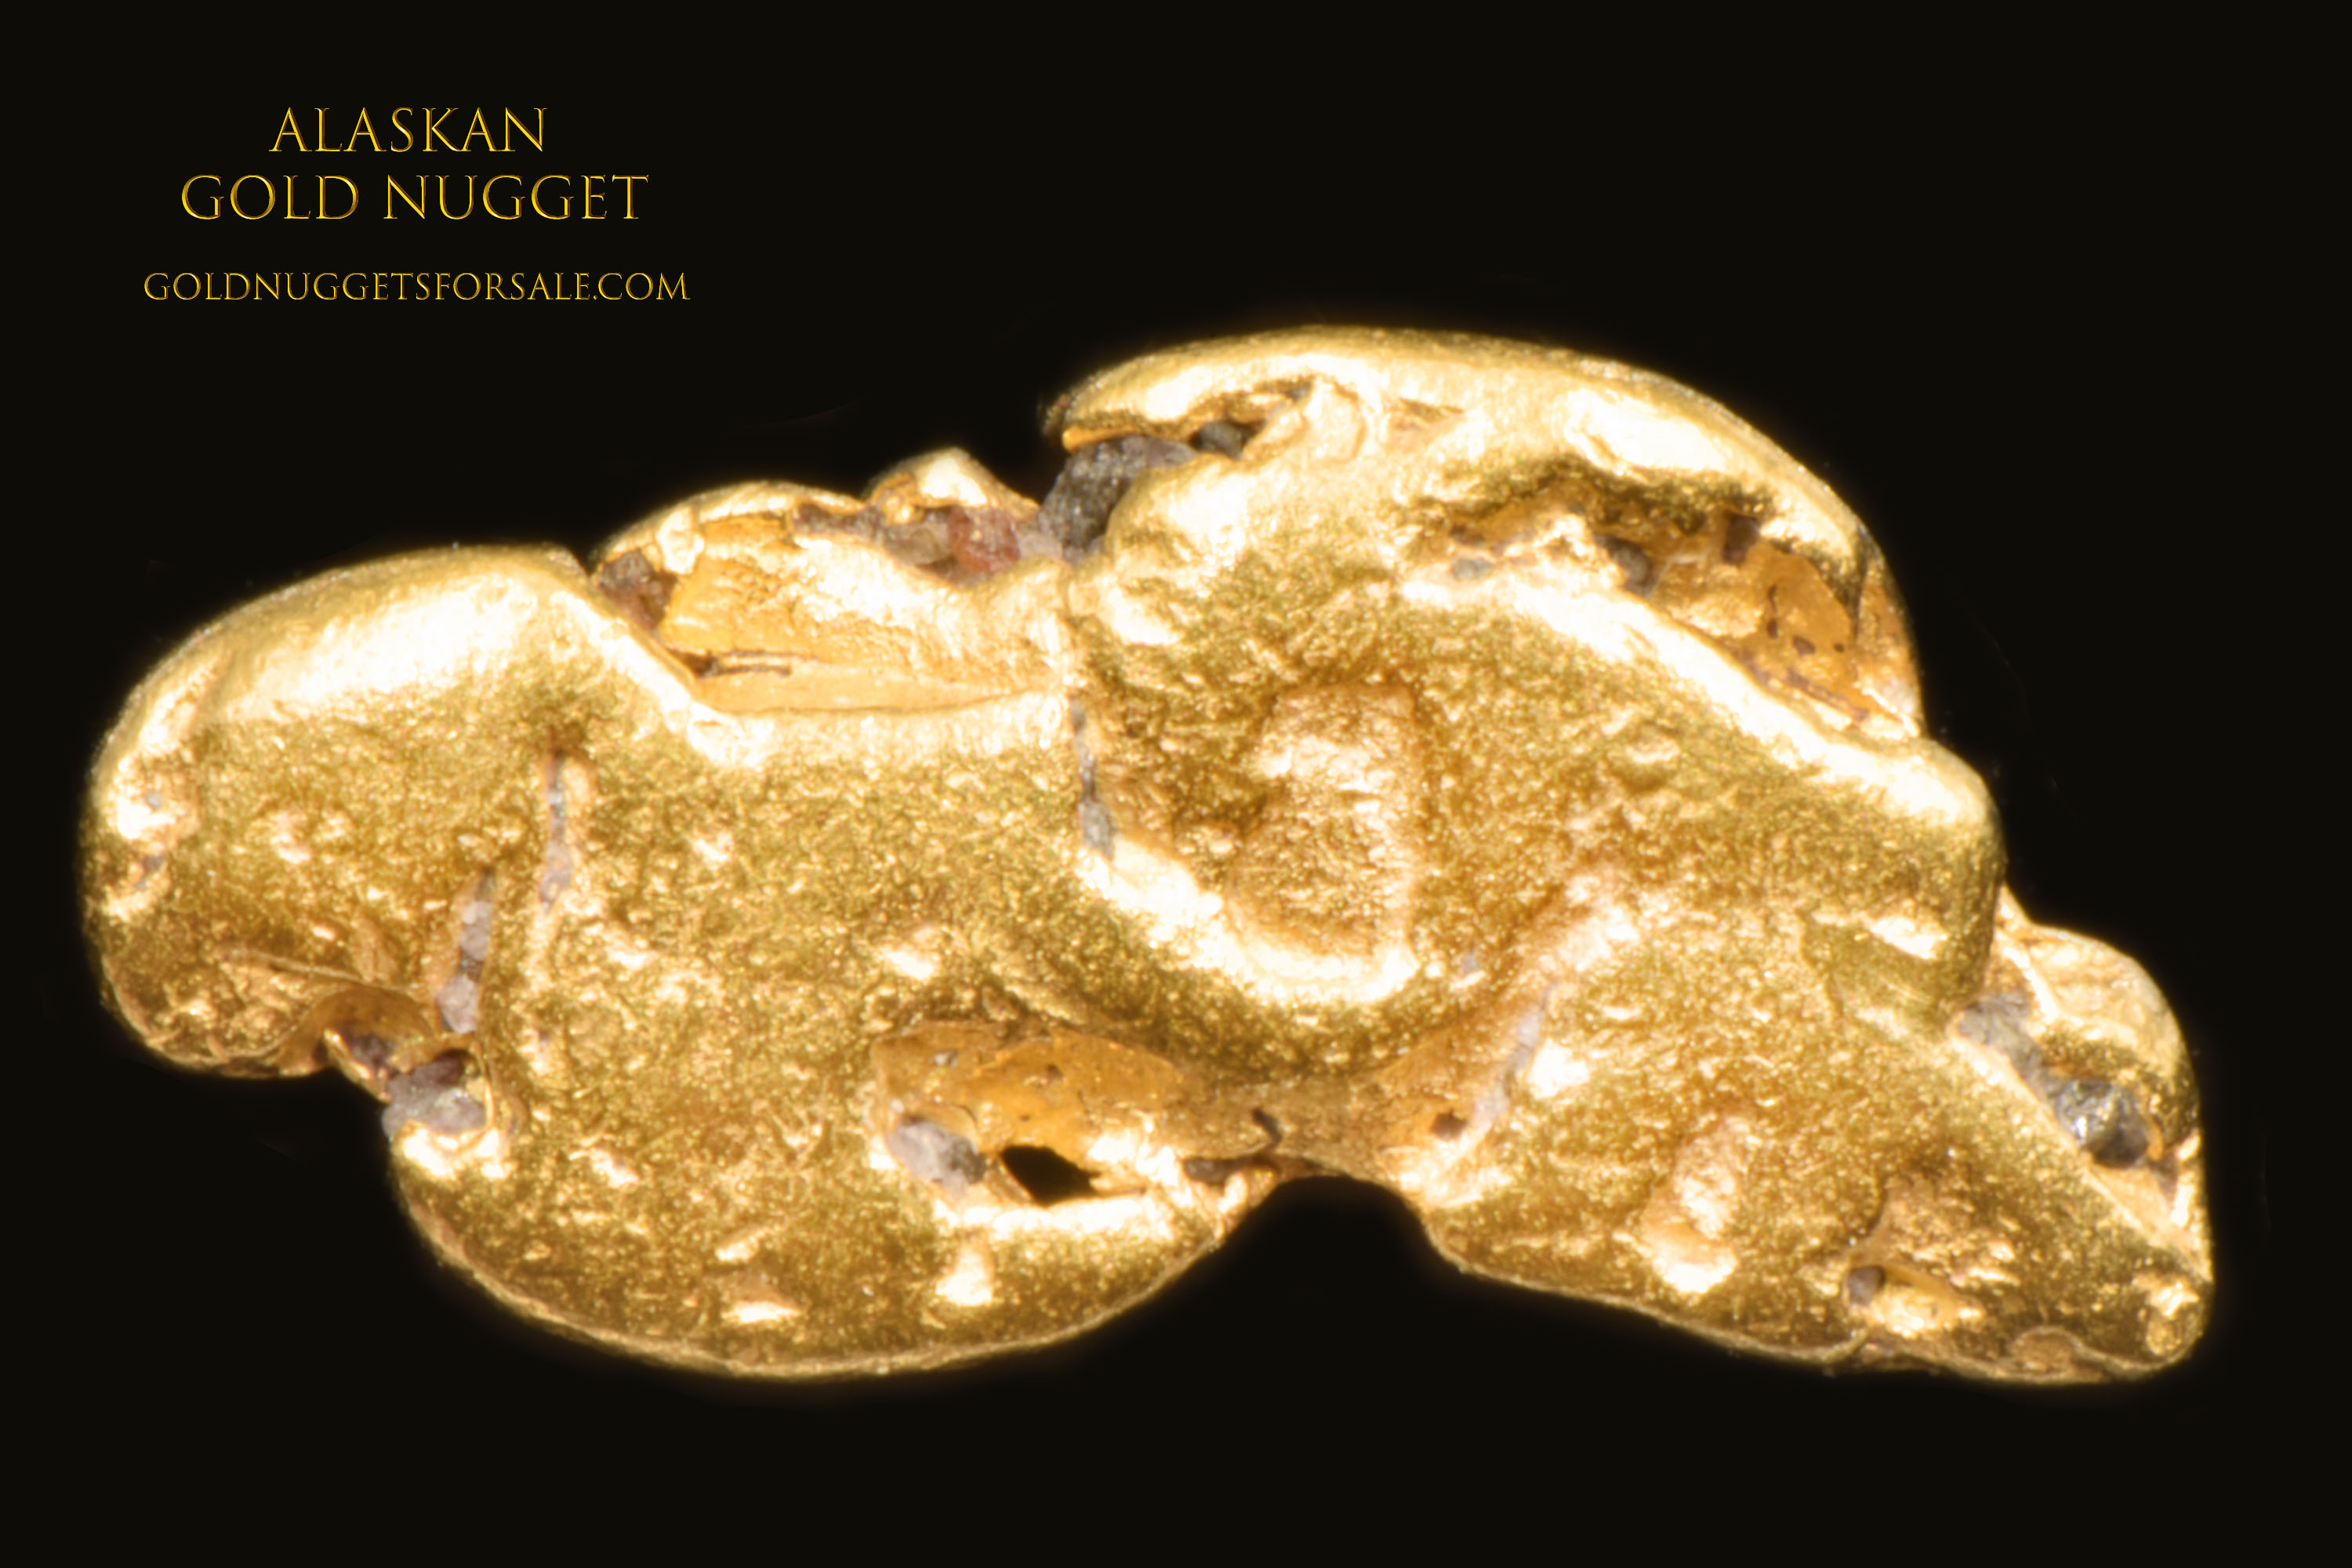 Native Alaskan Jewelry Grade Gold Nugget